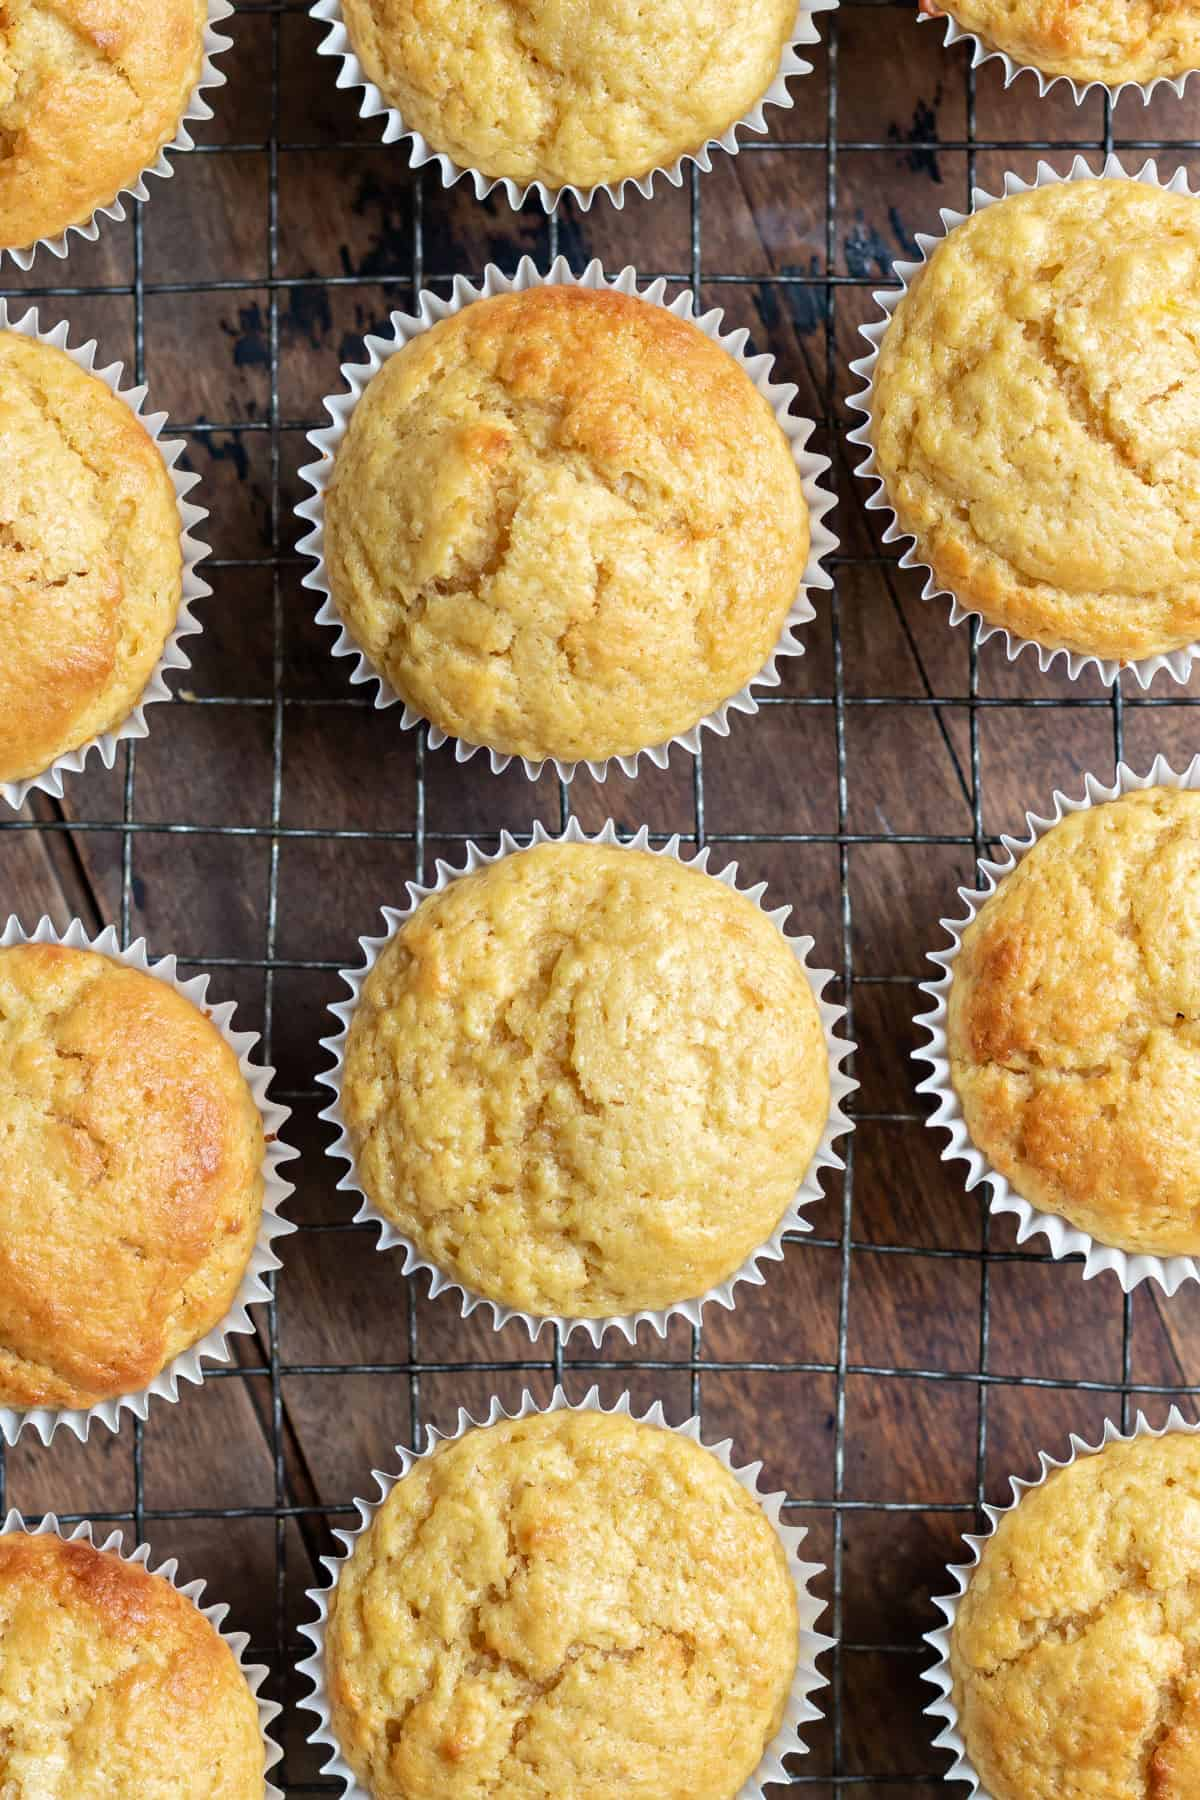 Rows of muffins cooling on a wire rack.